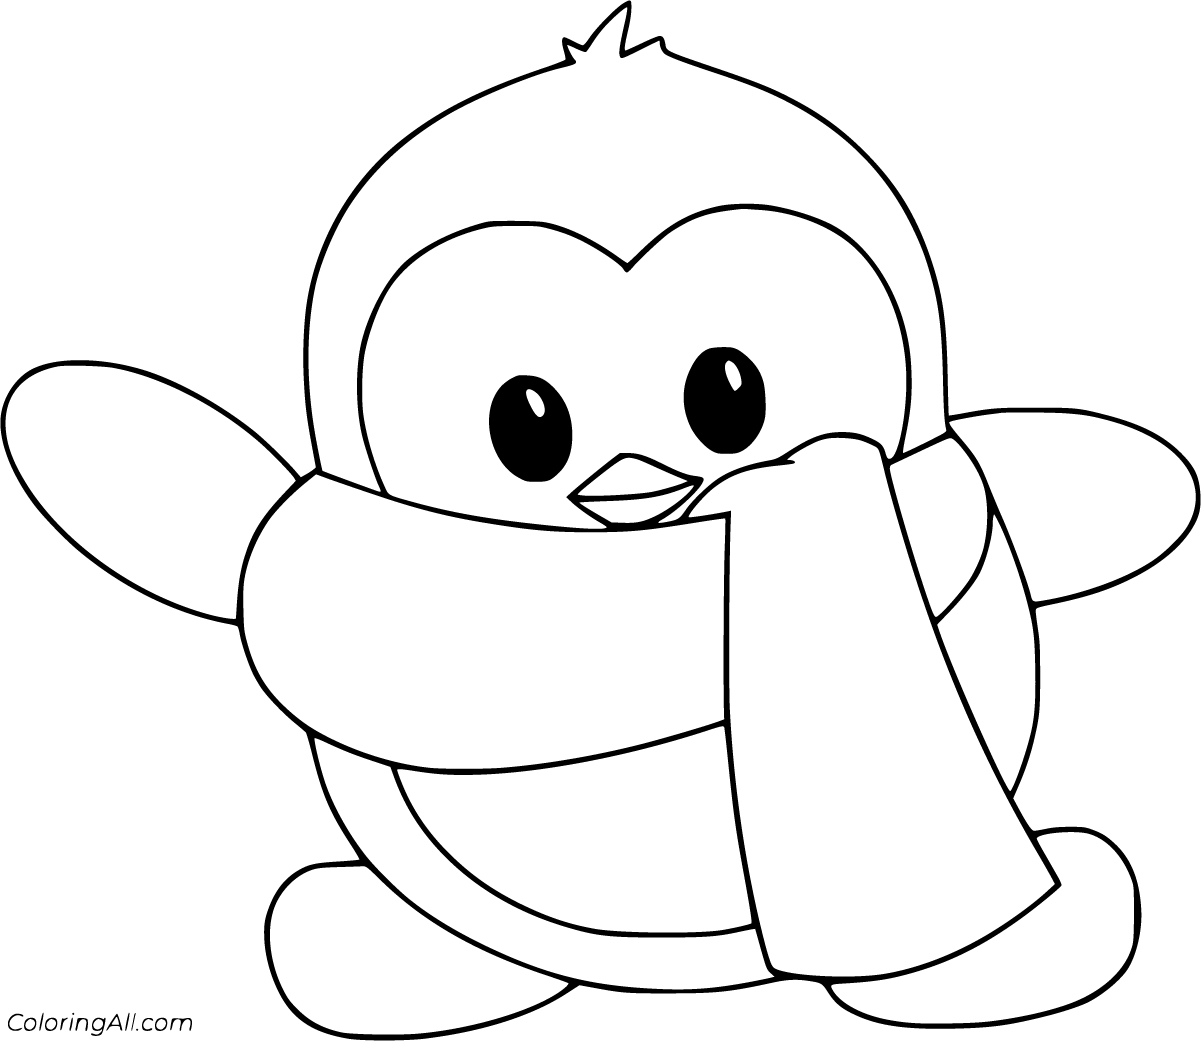 picture of penguin to color penguin coloring pages coloringall color picture penguin of to